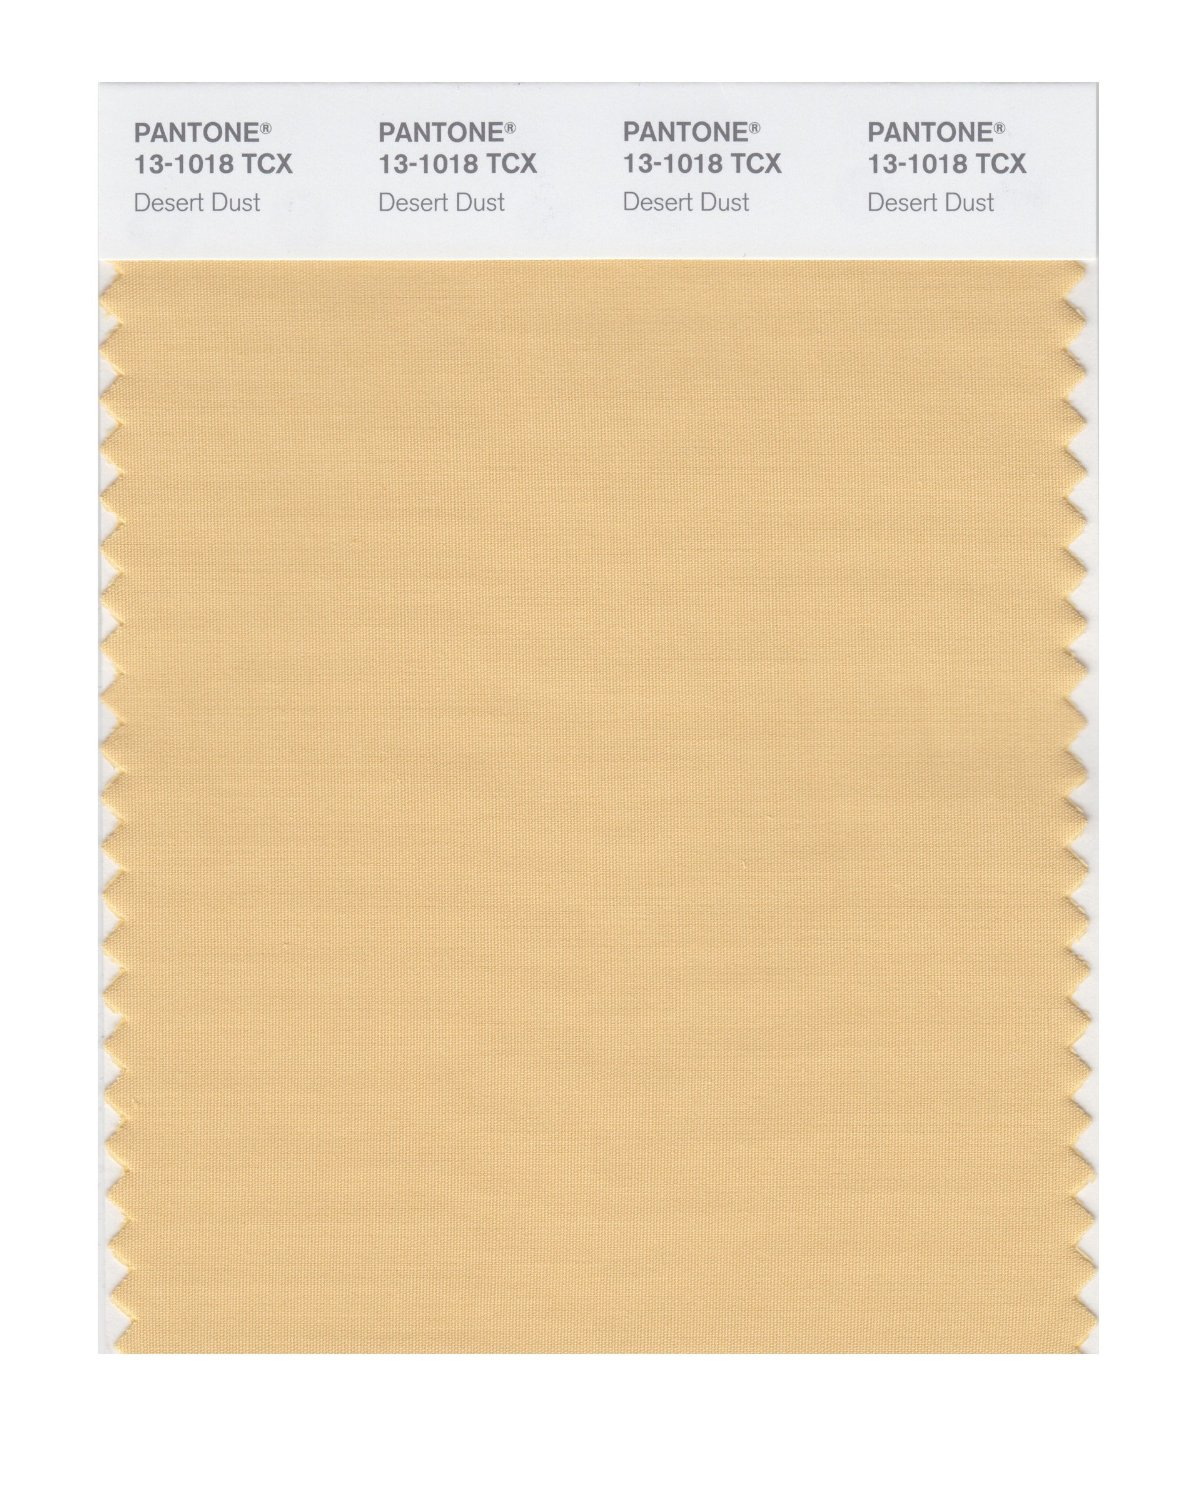 Pantone Smart Swatch 13-1018 Desert Dust